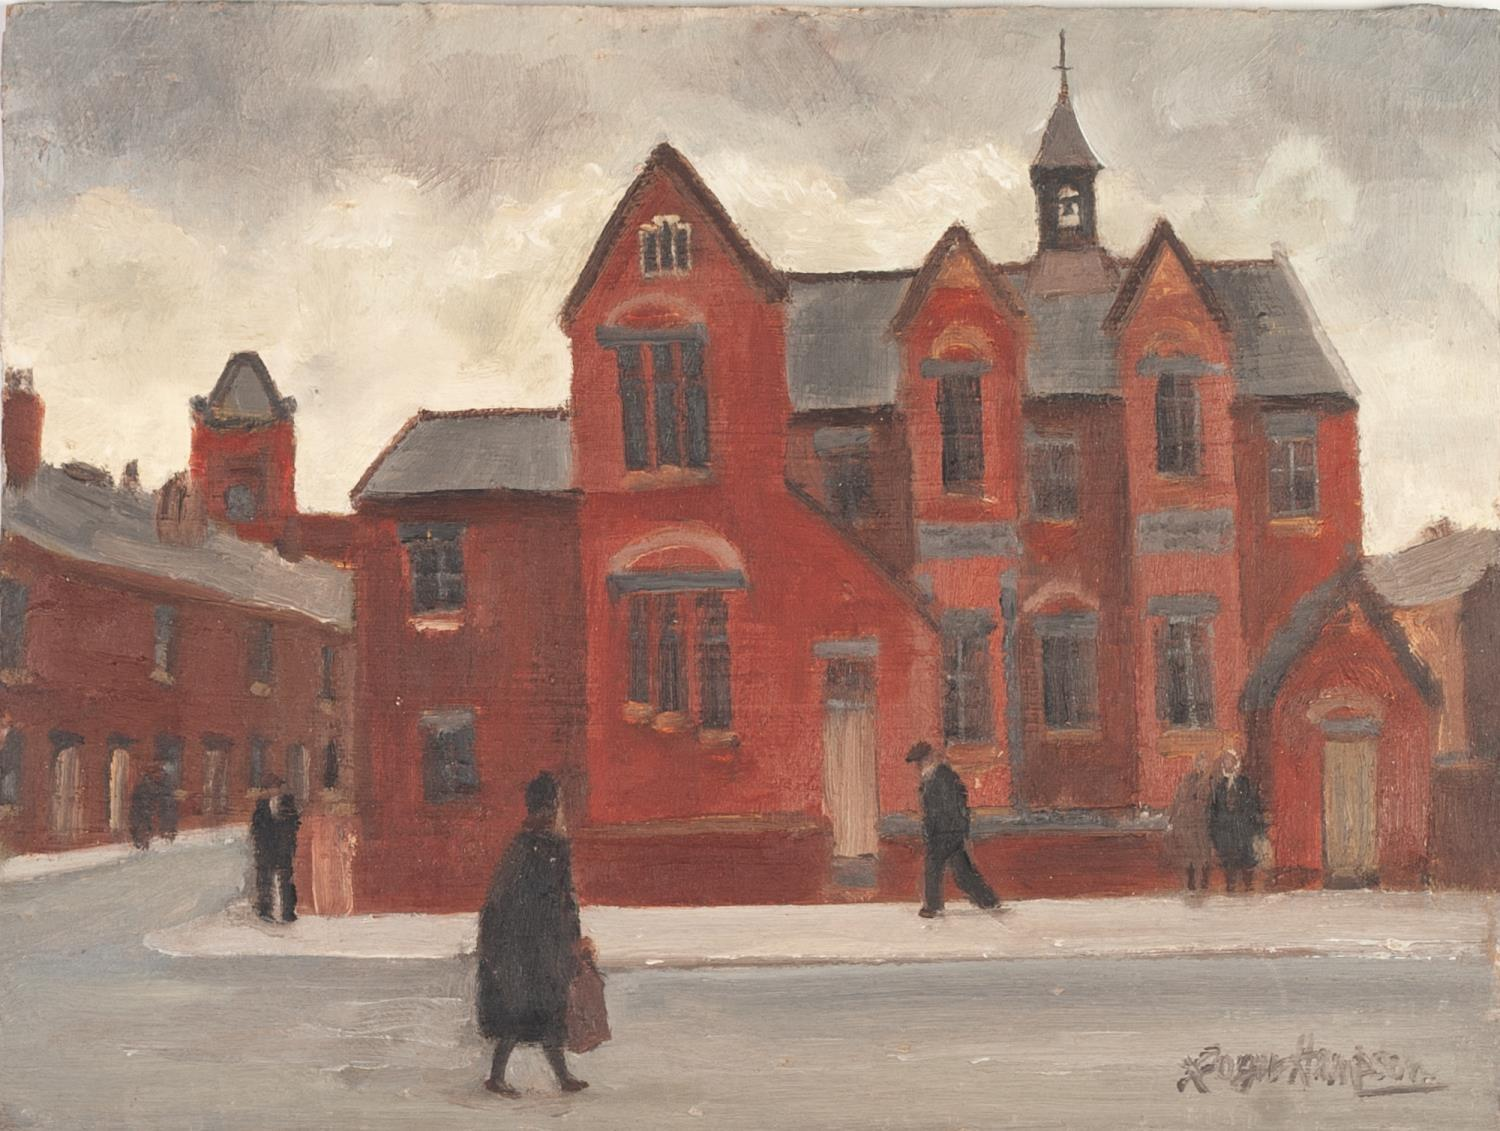 Lot 63 - ROGER HAMPSON (1925 - 1996) OIL PAINTING ON BOARD 'Jubilee Schools, Bolton' Signed, titled and